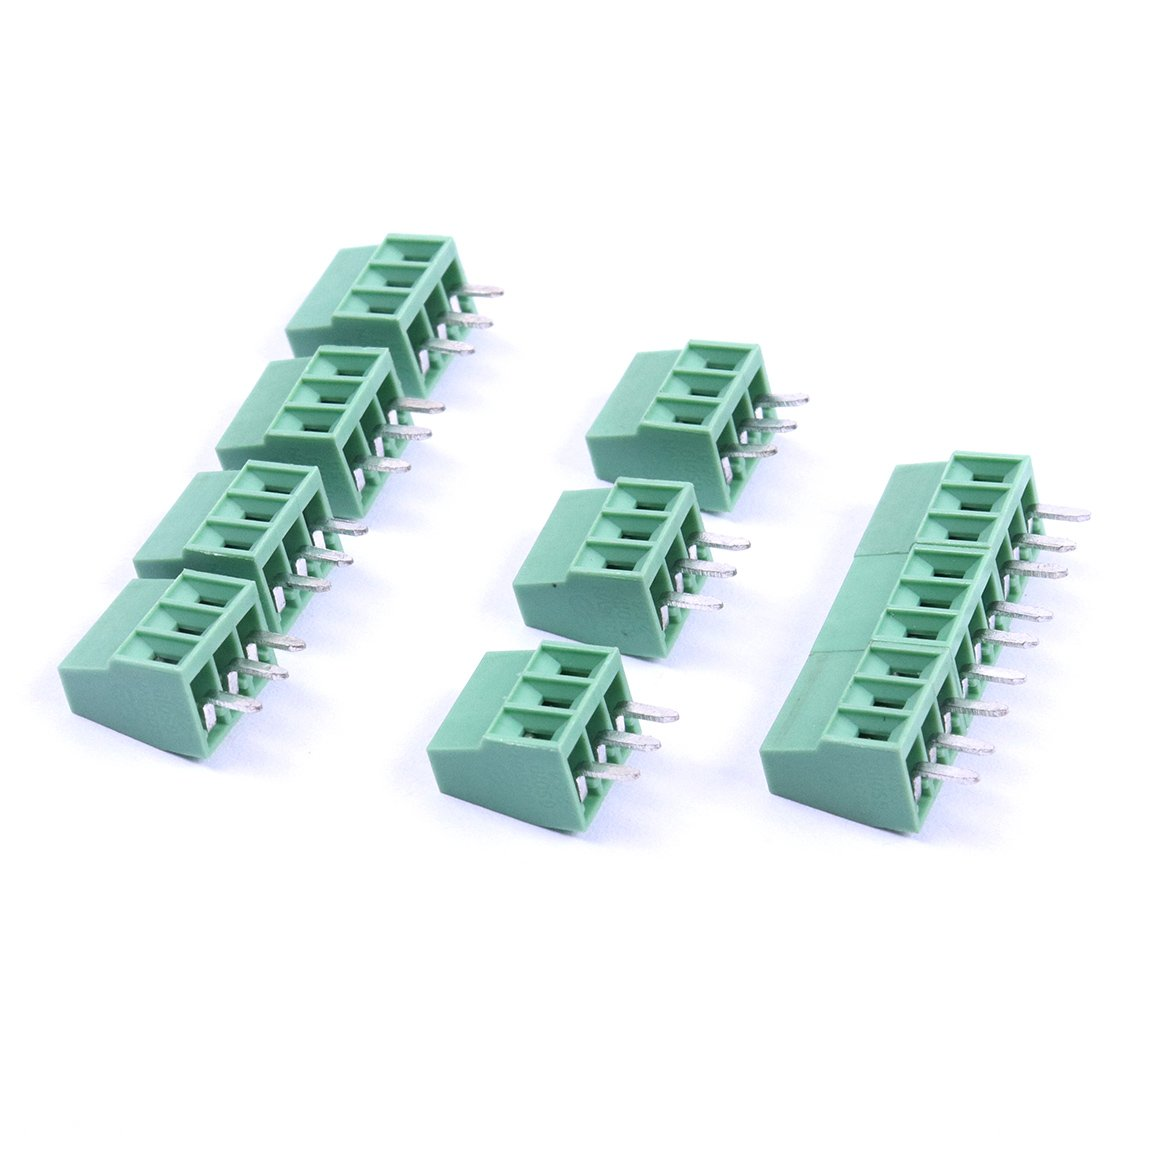 Cheap M8 3pin Screw Connector Find Deals On 3 Pin Wiring Diagram Get Quotations Atoplee 254mm 01 Pcb Universal Terminal Block 10